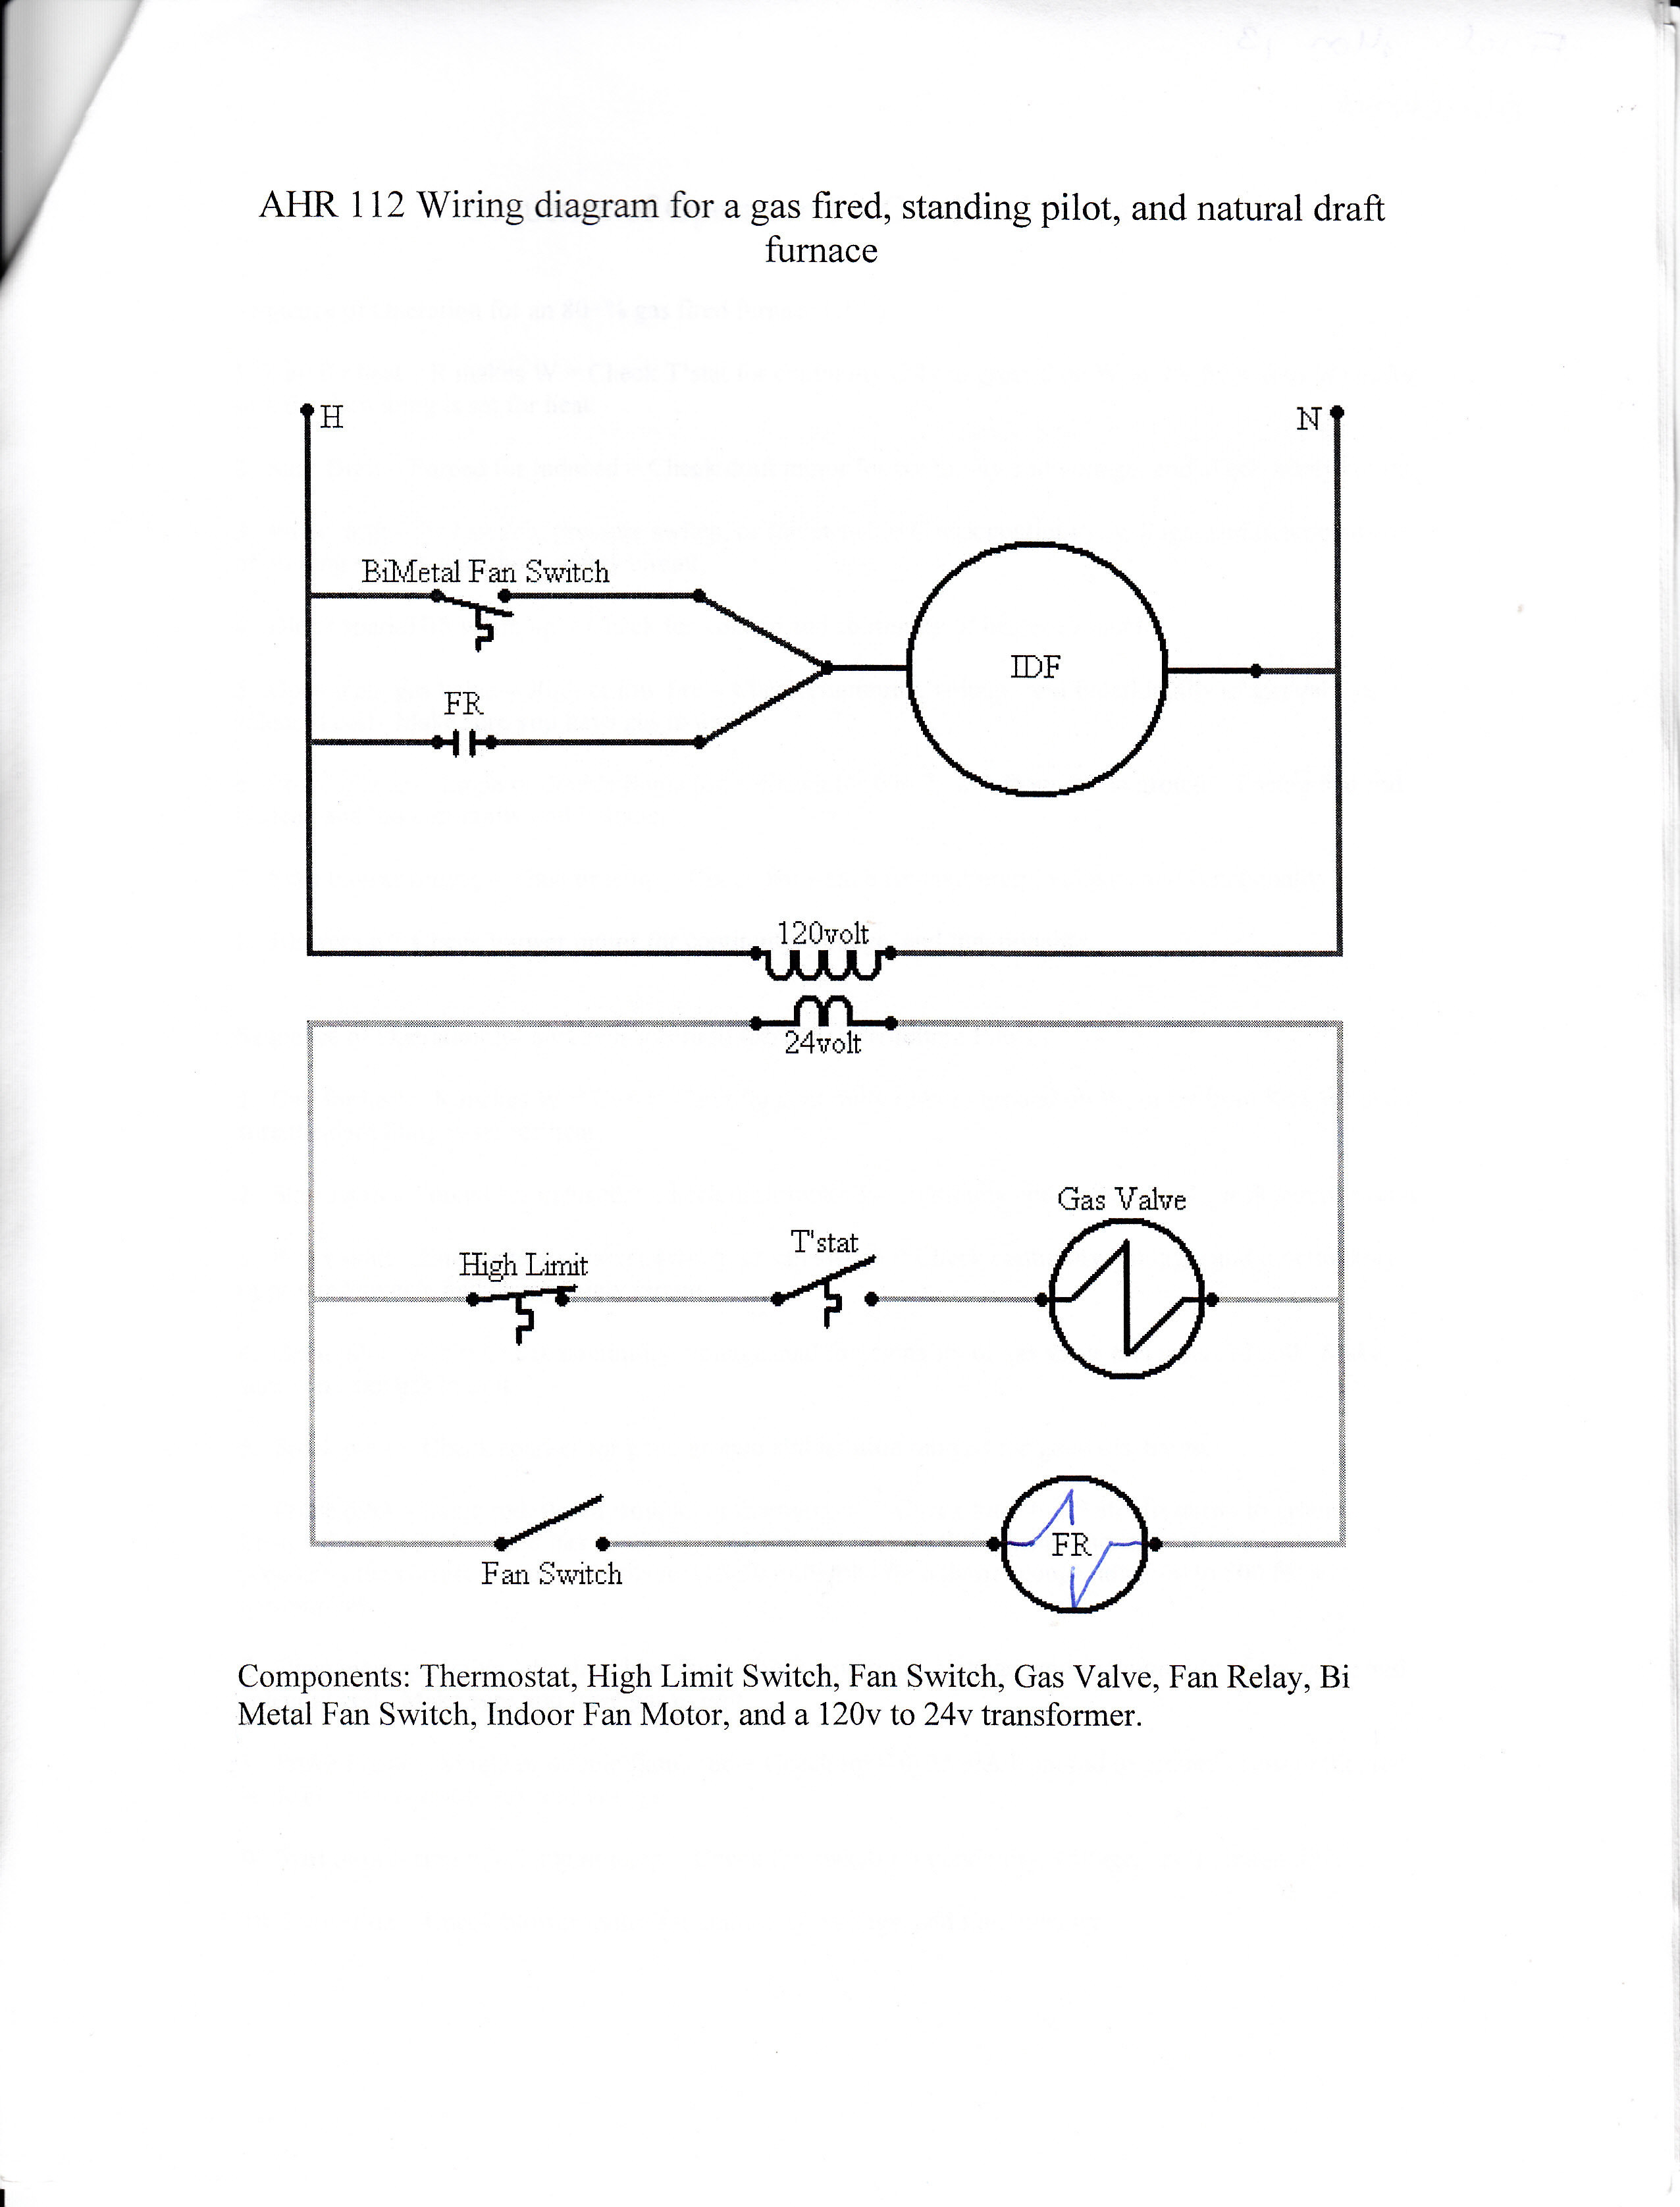 Standing Pilot Wiring Diagram Not Lossing Furnace Symbols Todays Rh 19 4 1813weddingbarn Com Light Switch